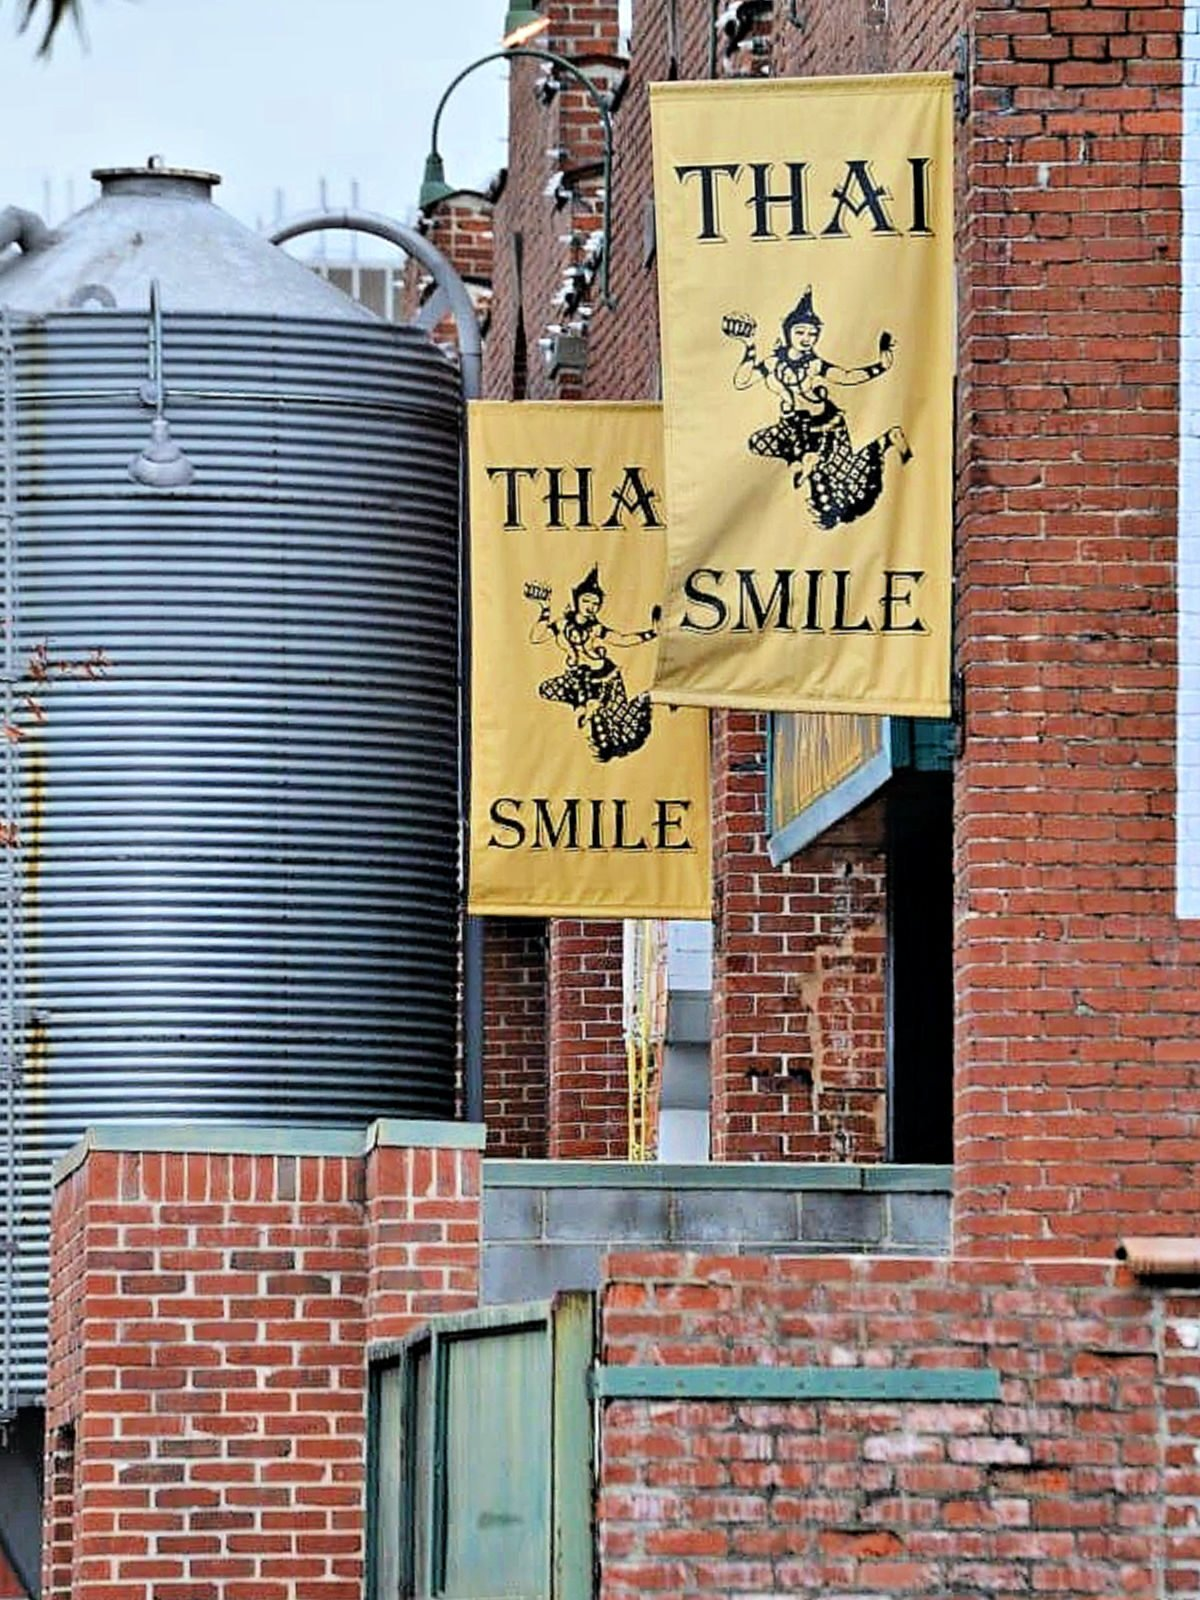 Thai Smile restaurant banners on side of building.